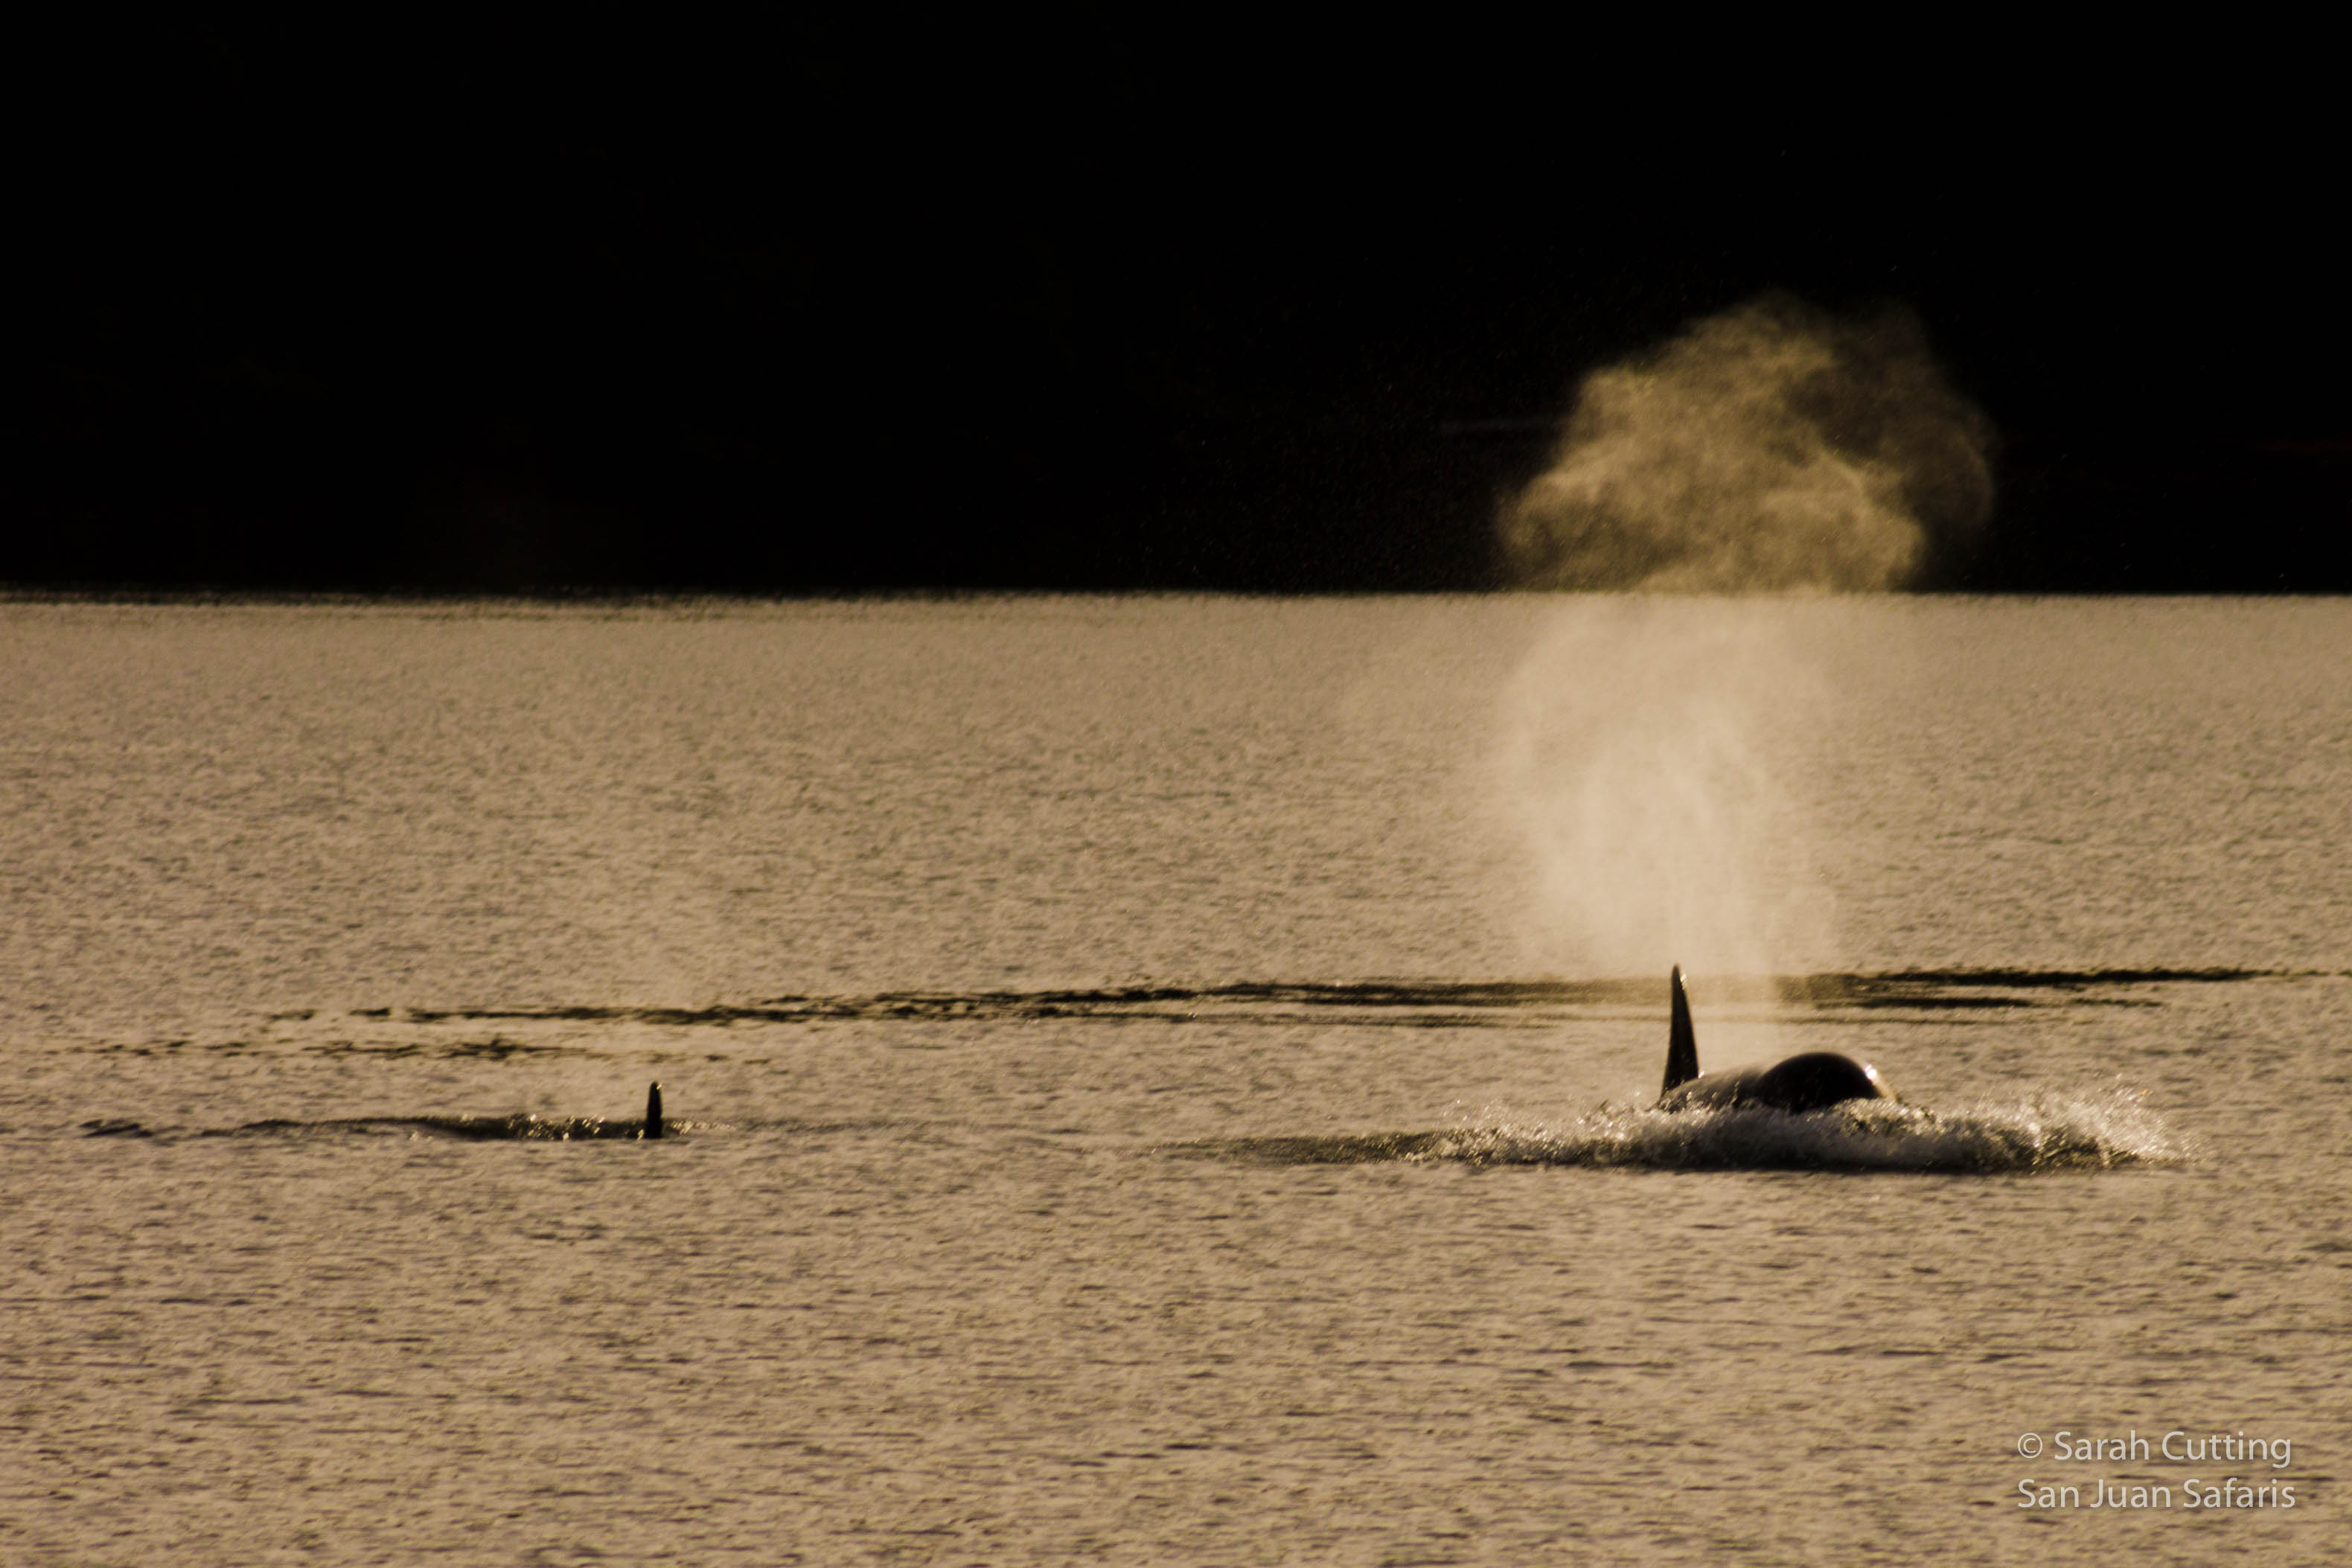 Why All the Transient Killer Whales?